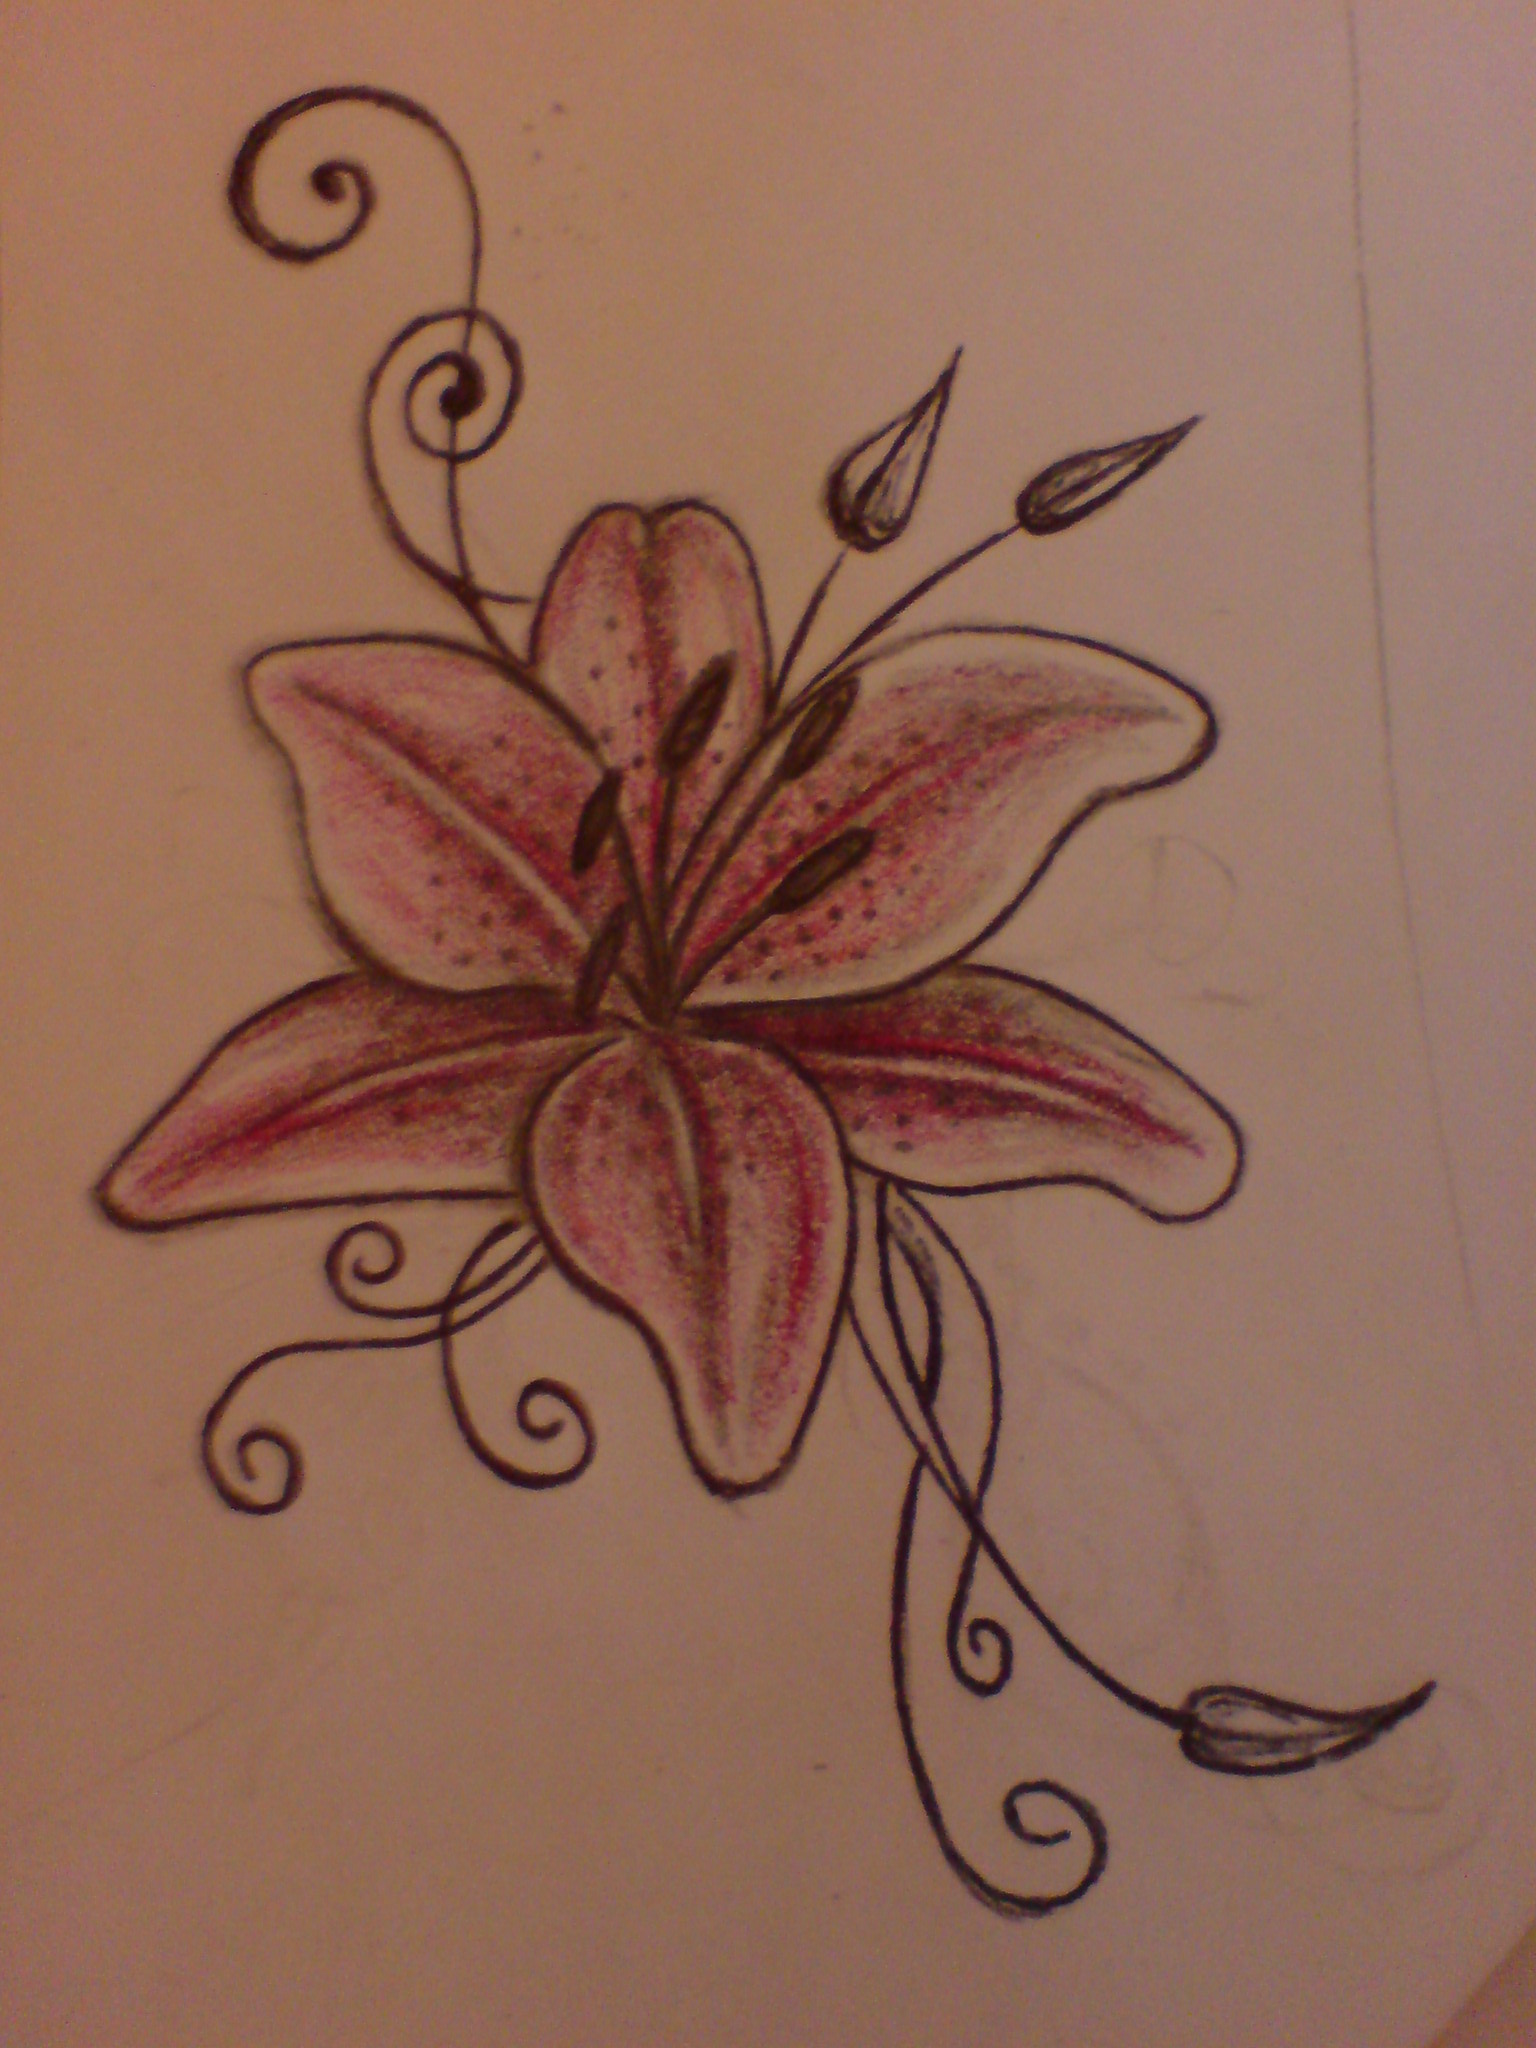 67 lily tattoos ideas with meaning red lily flower tattoo design izmirmasajfo